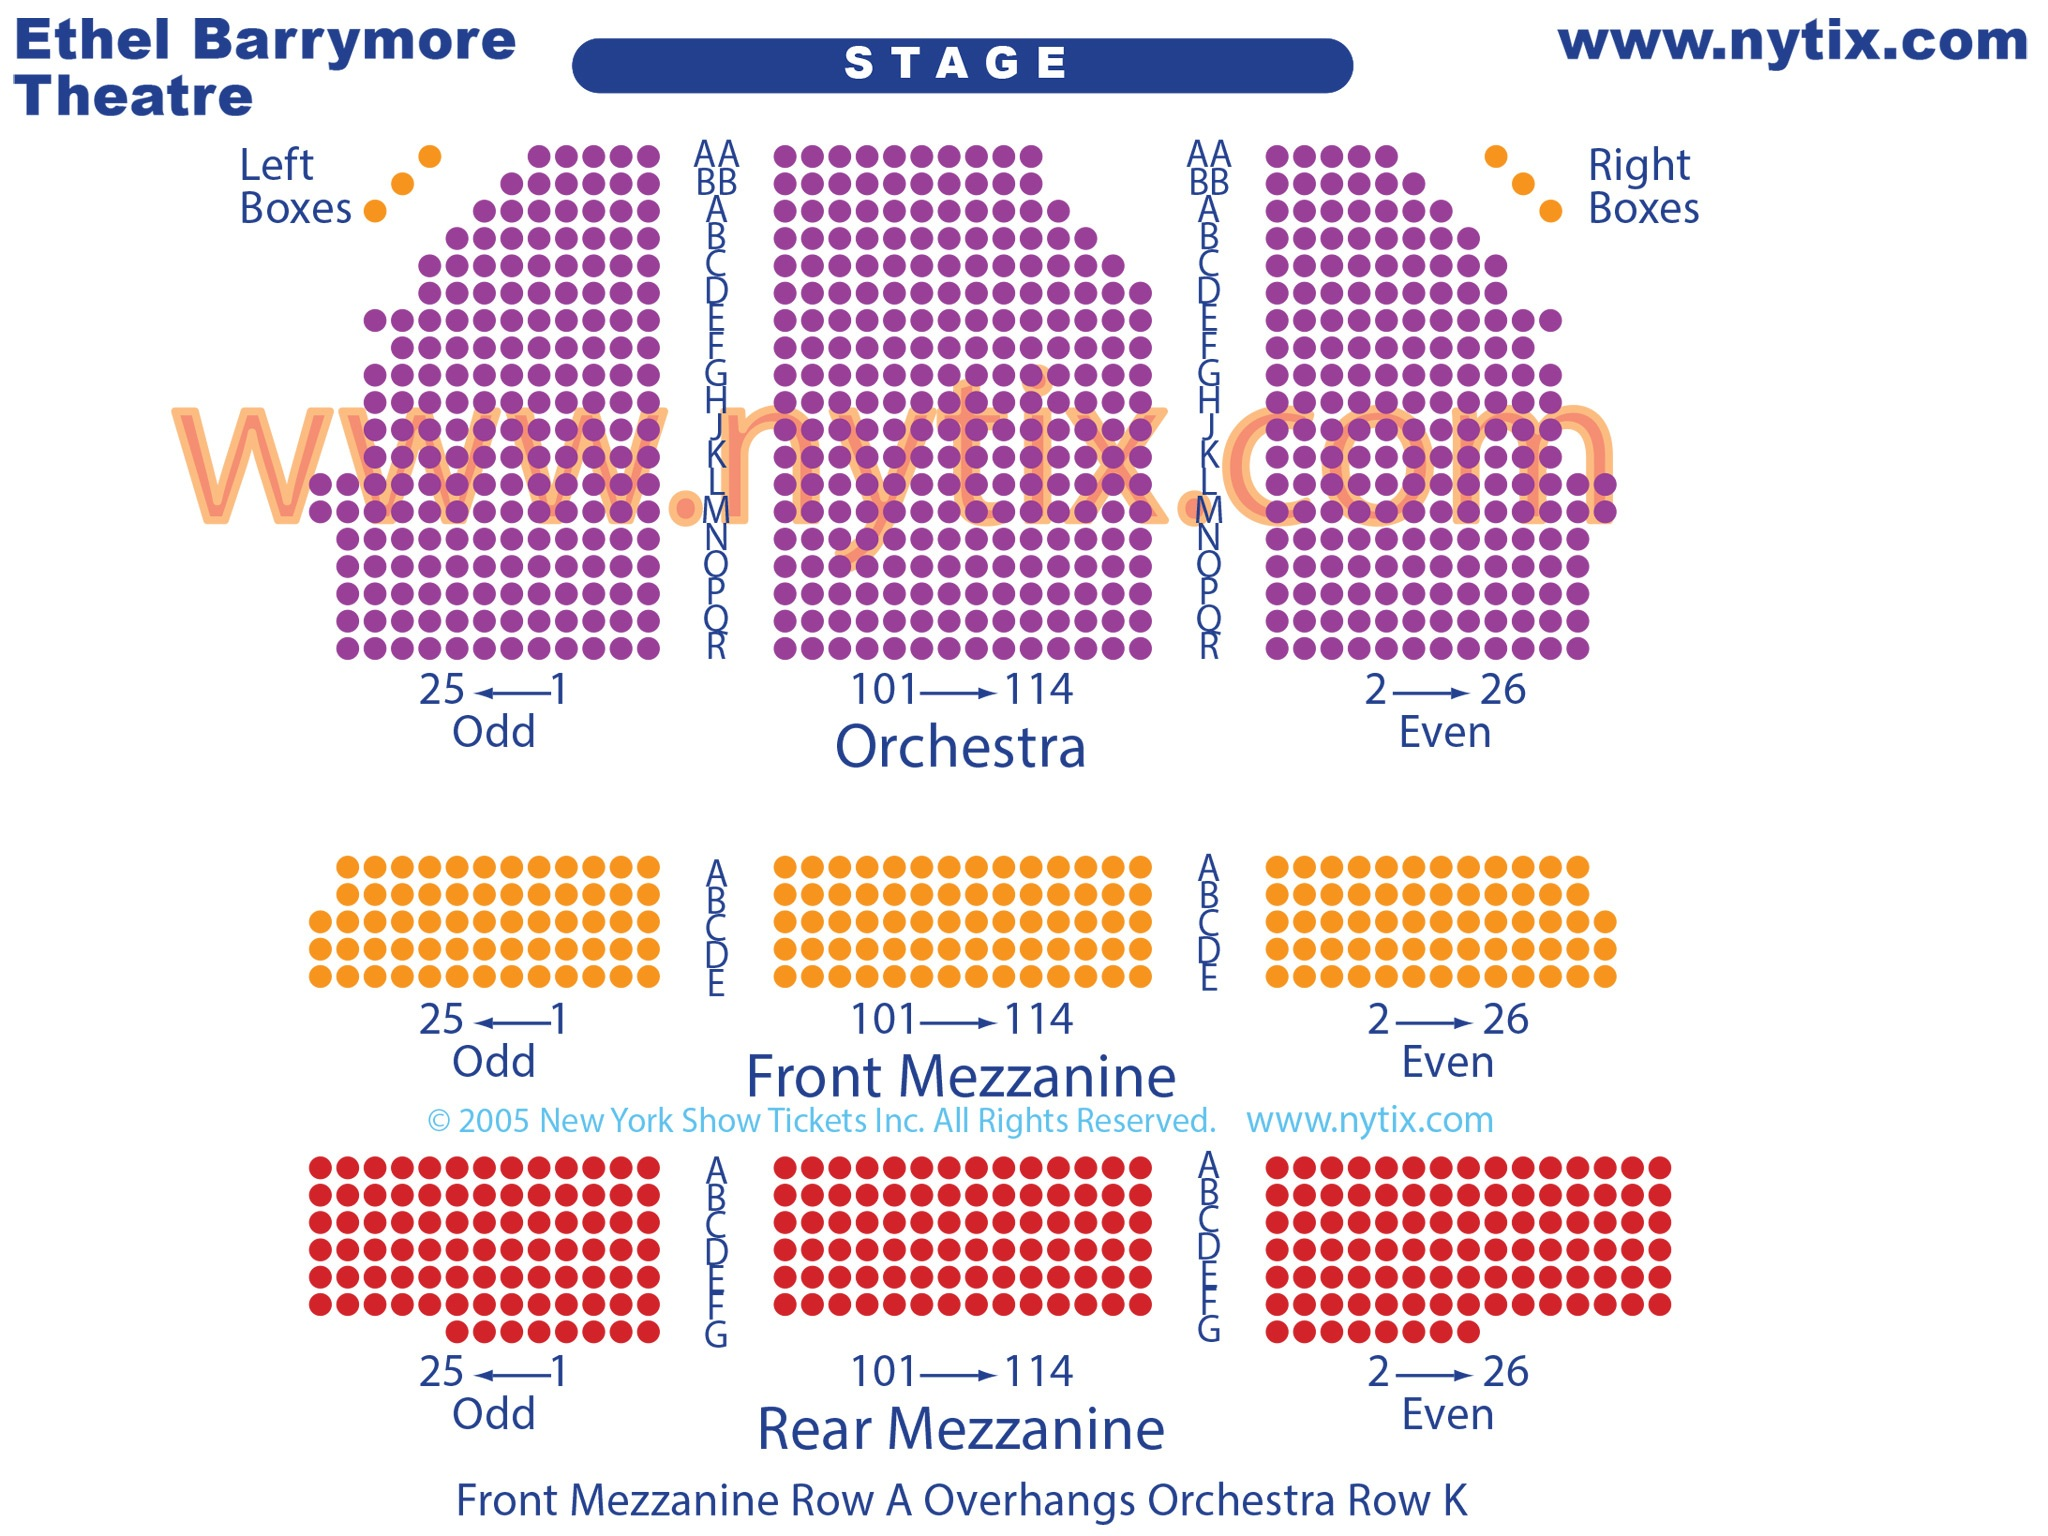 Ethel Barrymore Theatre Seating Chart